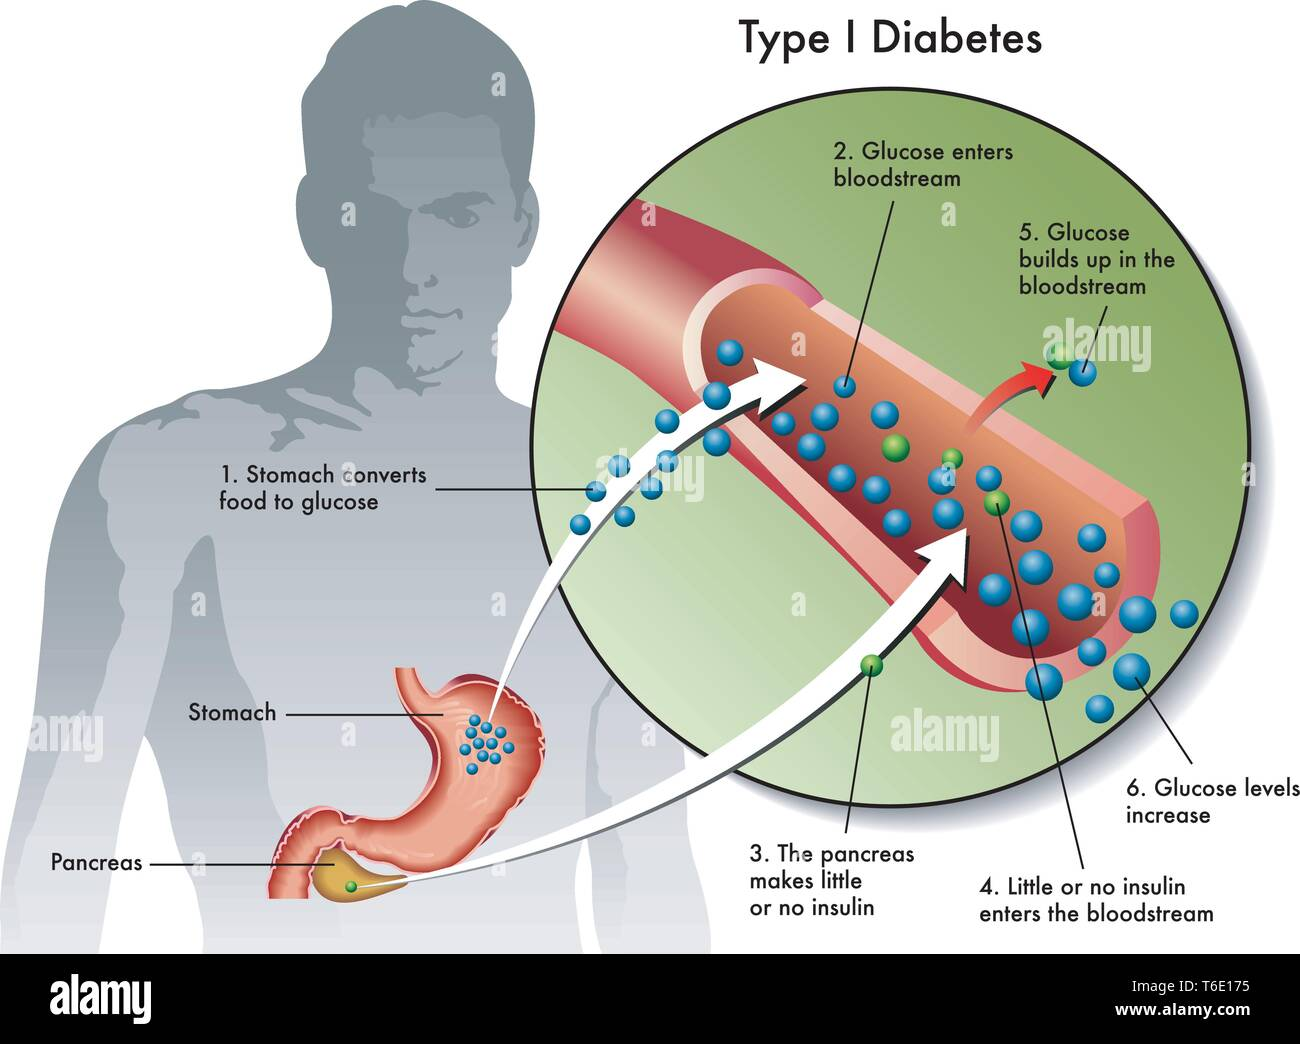 Medical illustration of the symptoms of type 1 diabetes - Stock Image